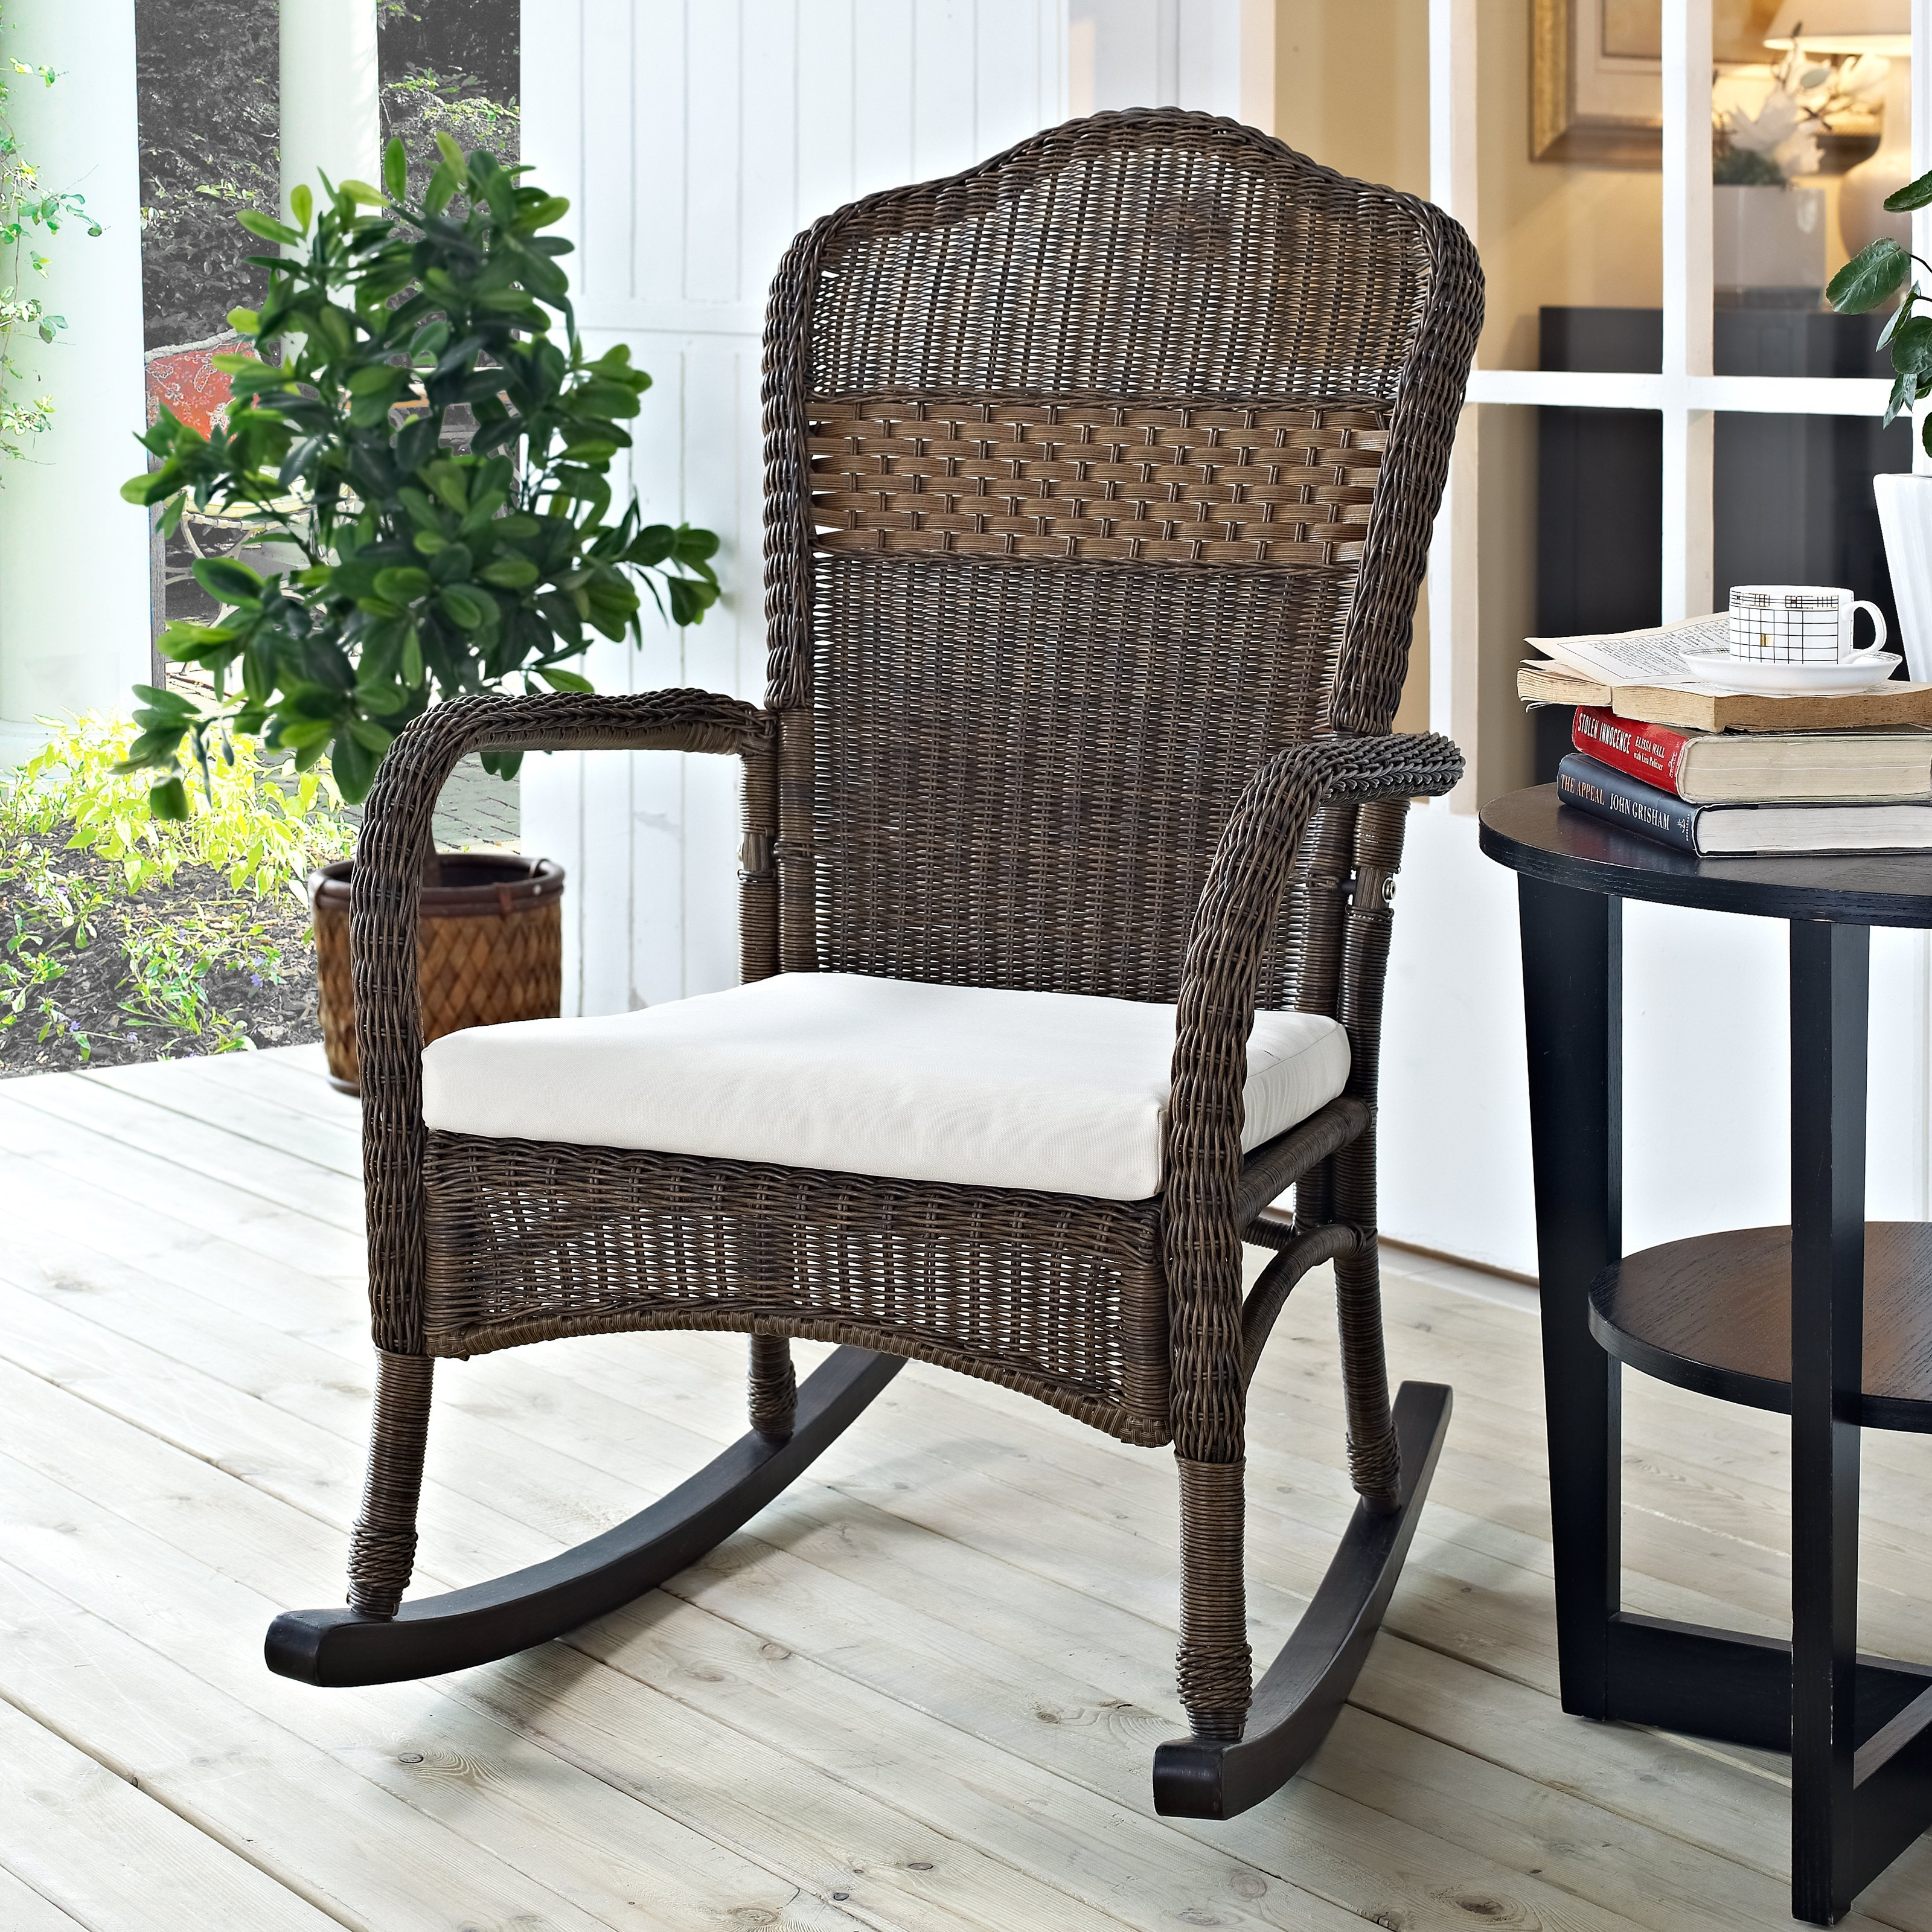 Chairs: Fancy Outdoor Rocking Chair For Your Outdoor Space For Patio Furniture Rocking Benches (View 5 of 15)